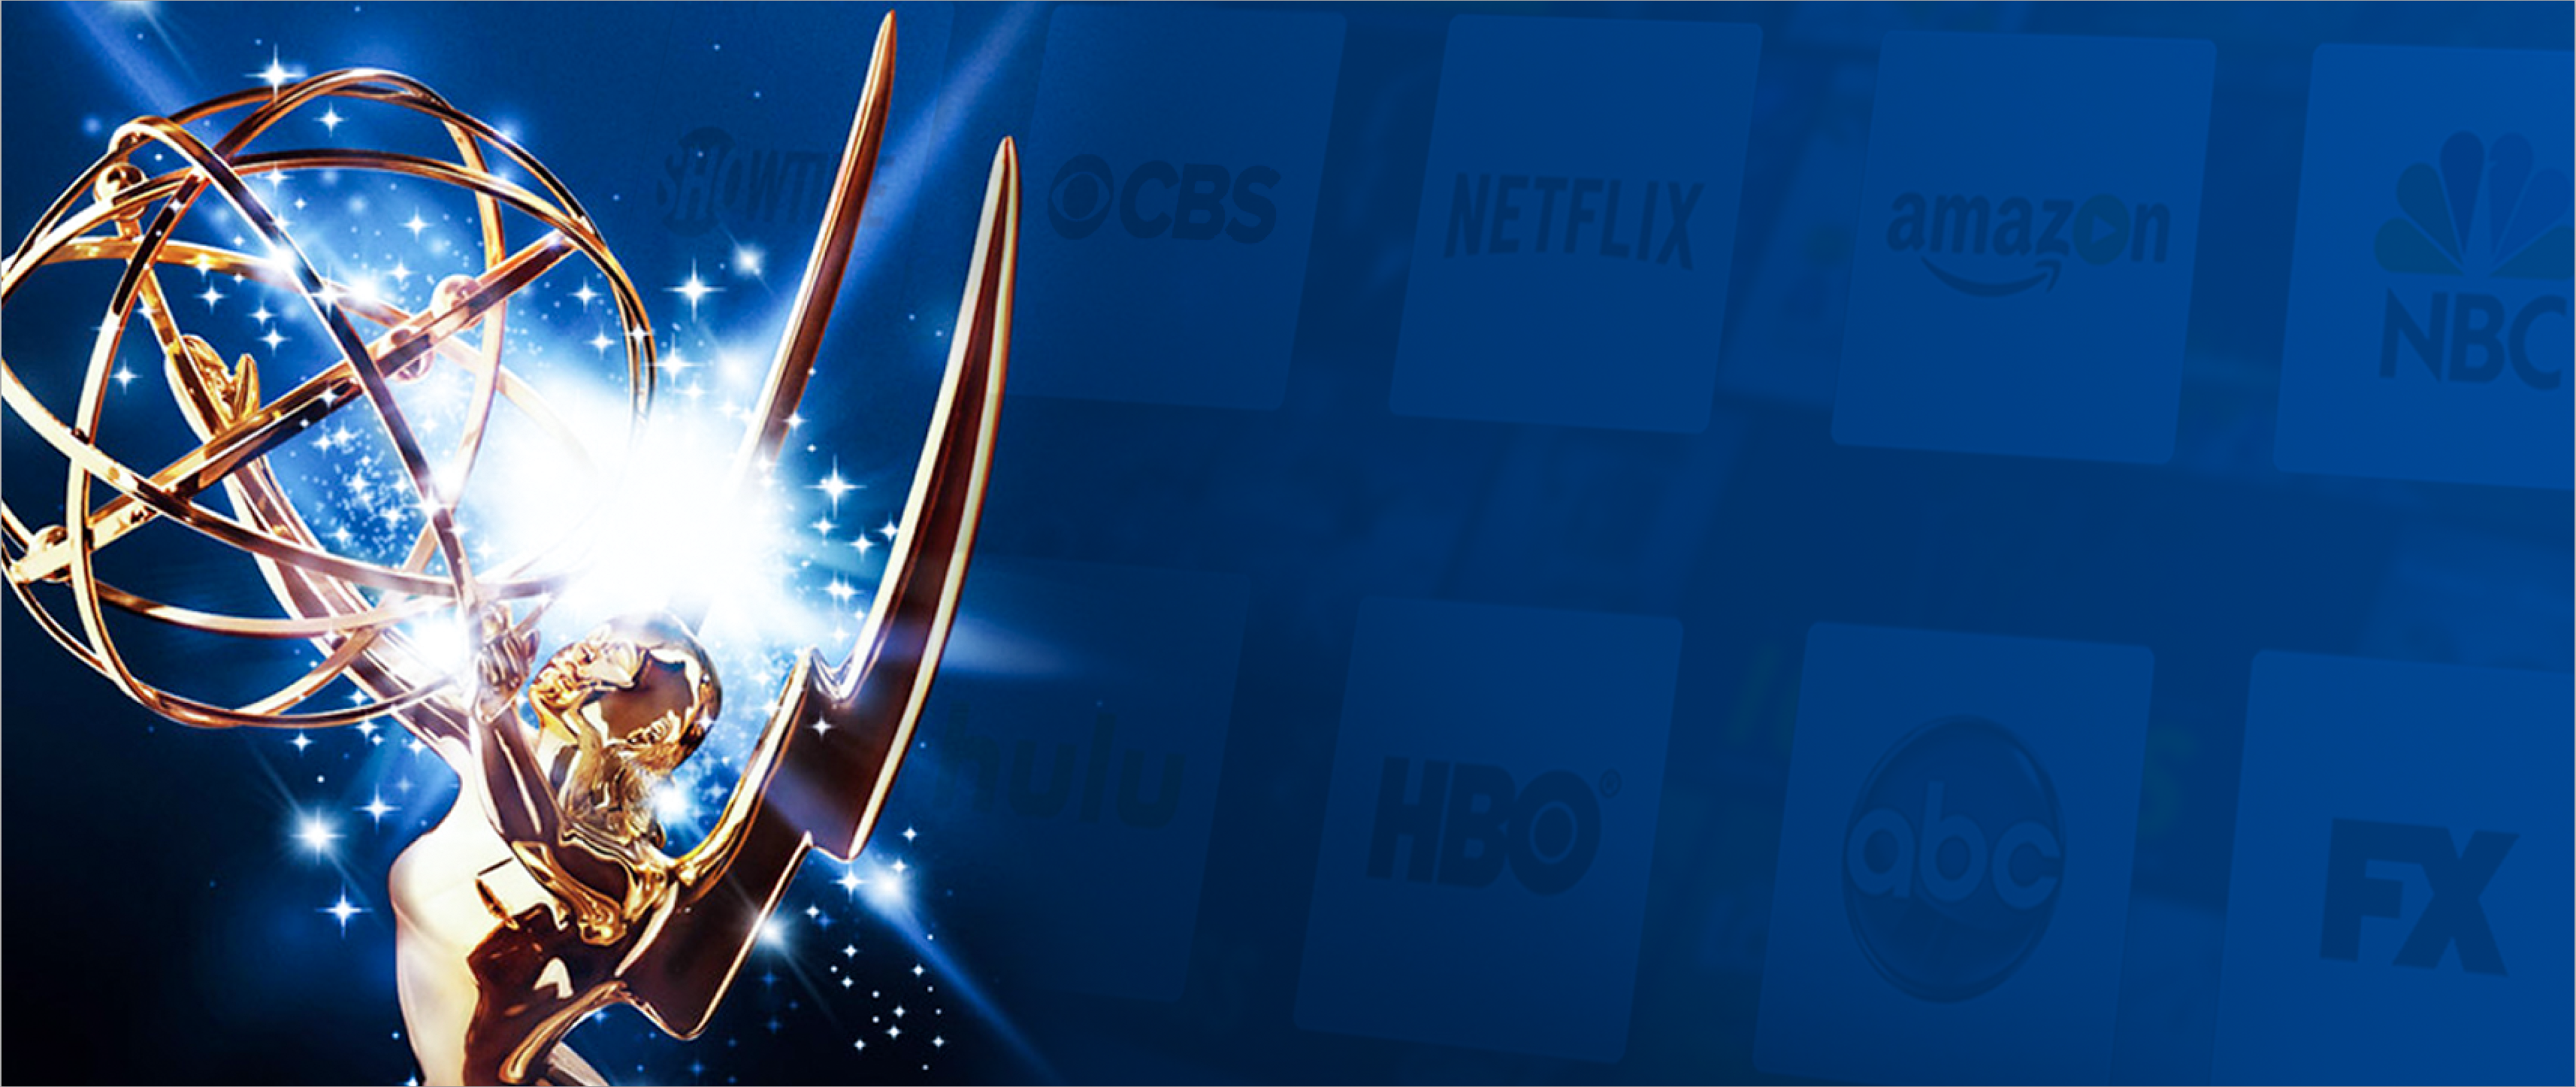 Parrot: Emmy nominations 'overvalue' HBO and Netflix